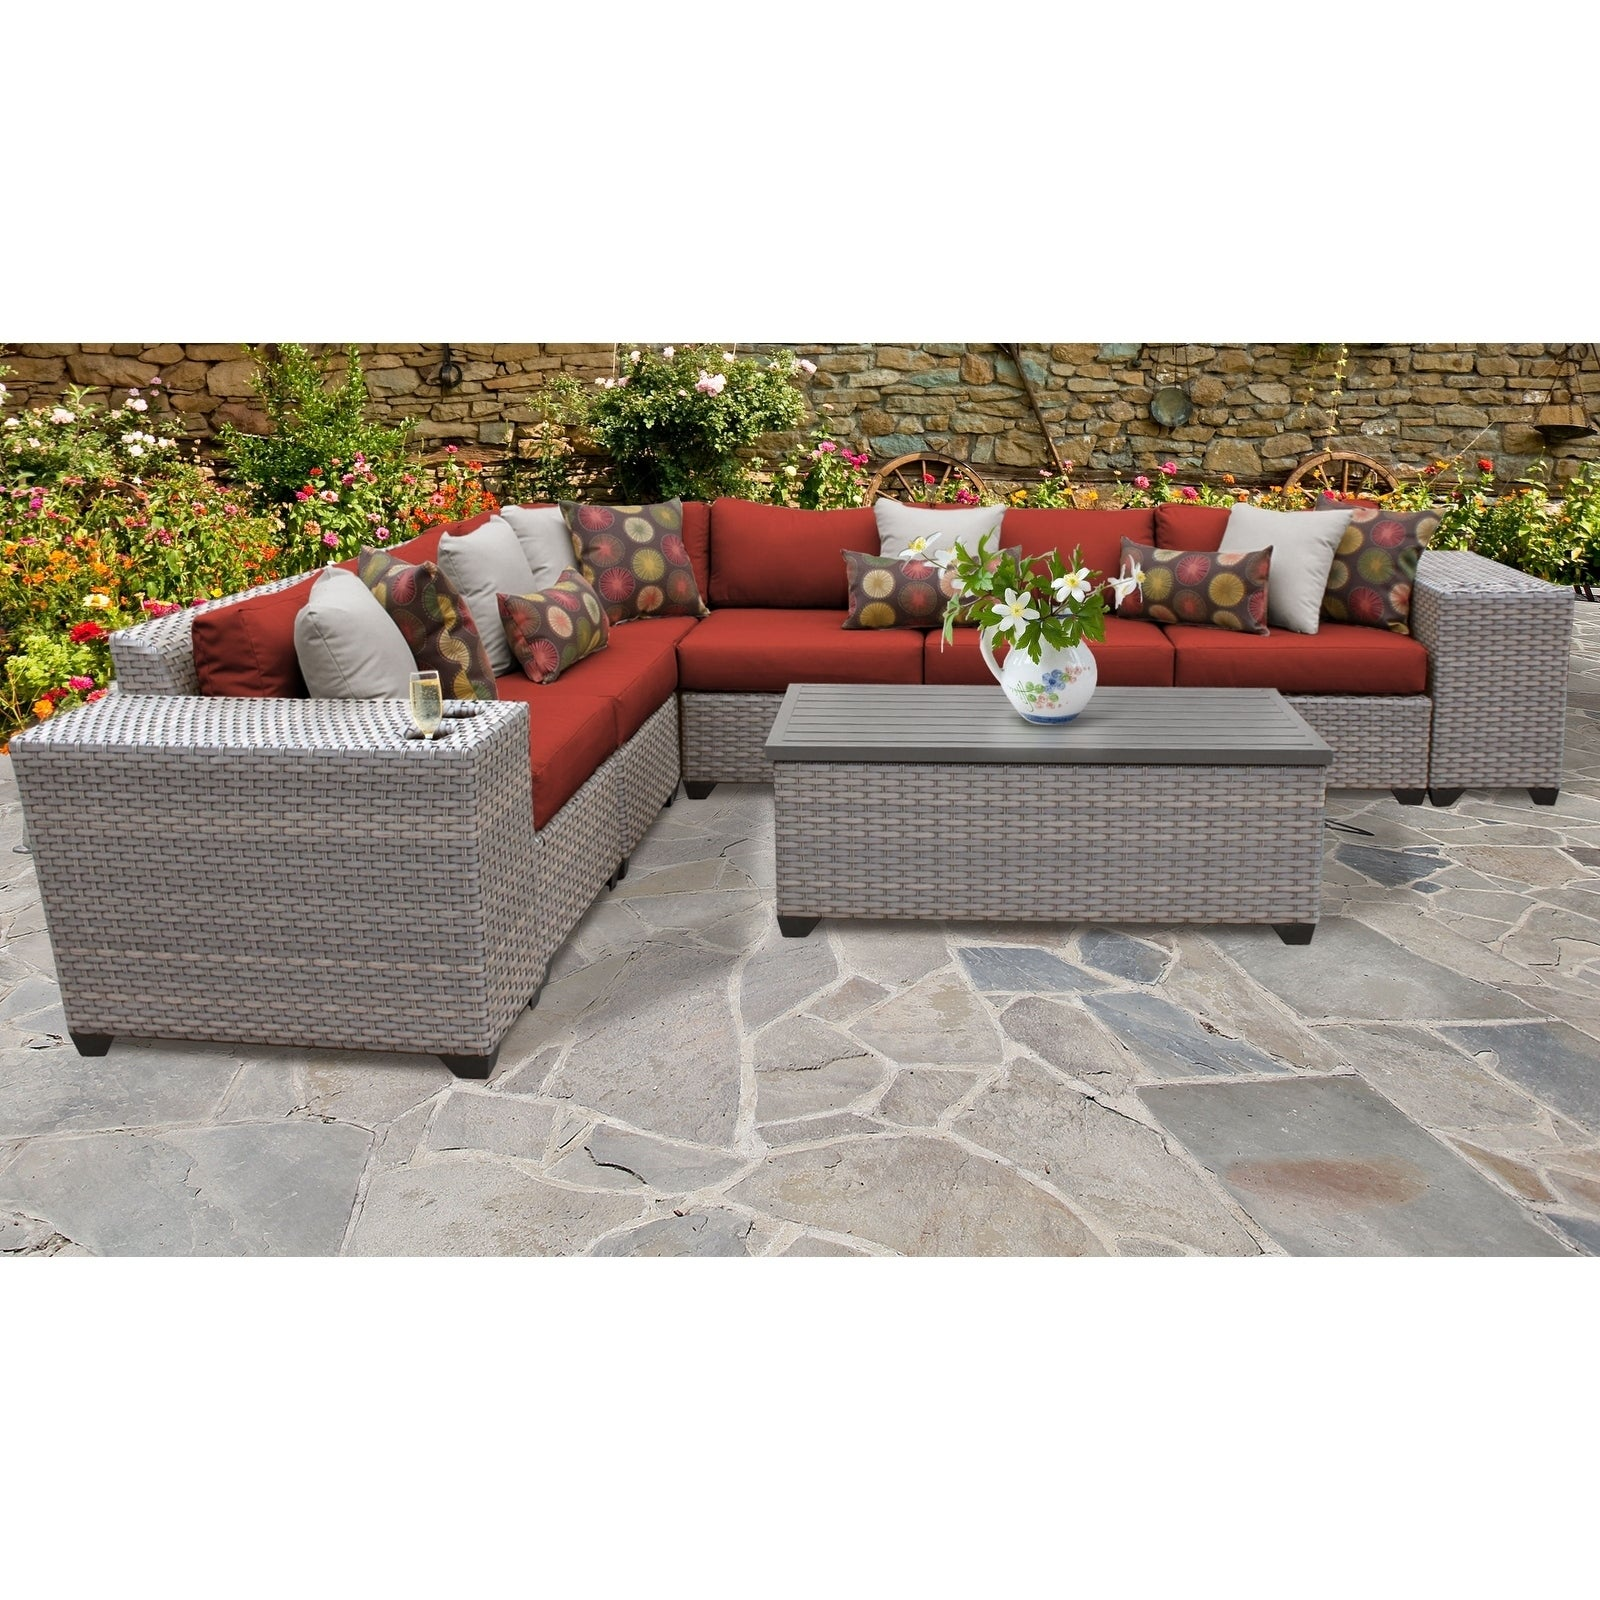 Details About Florence 9 Piece Outdoor Wicker Patio Furniture Set 09b